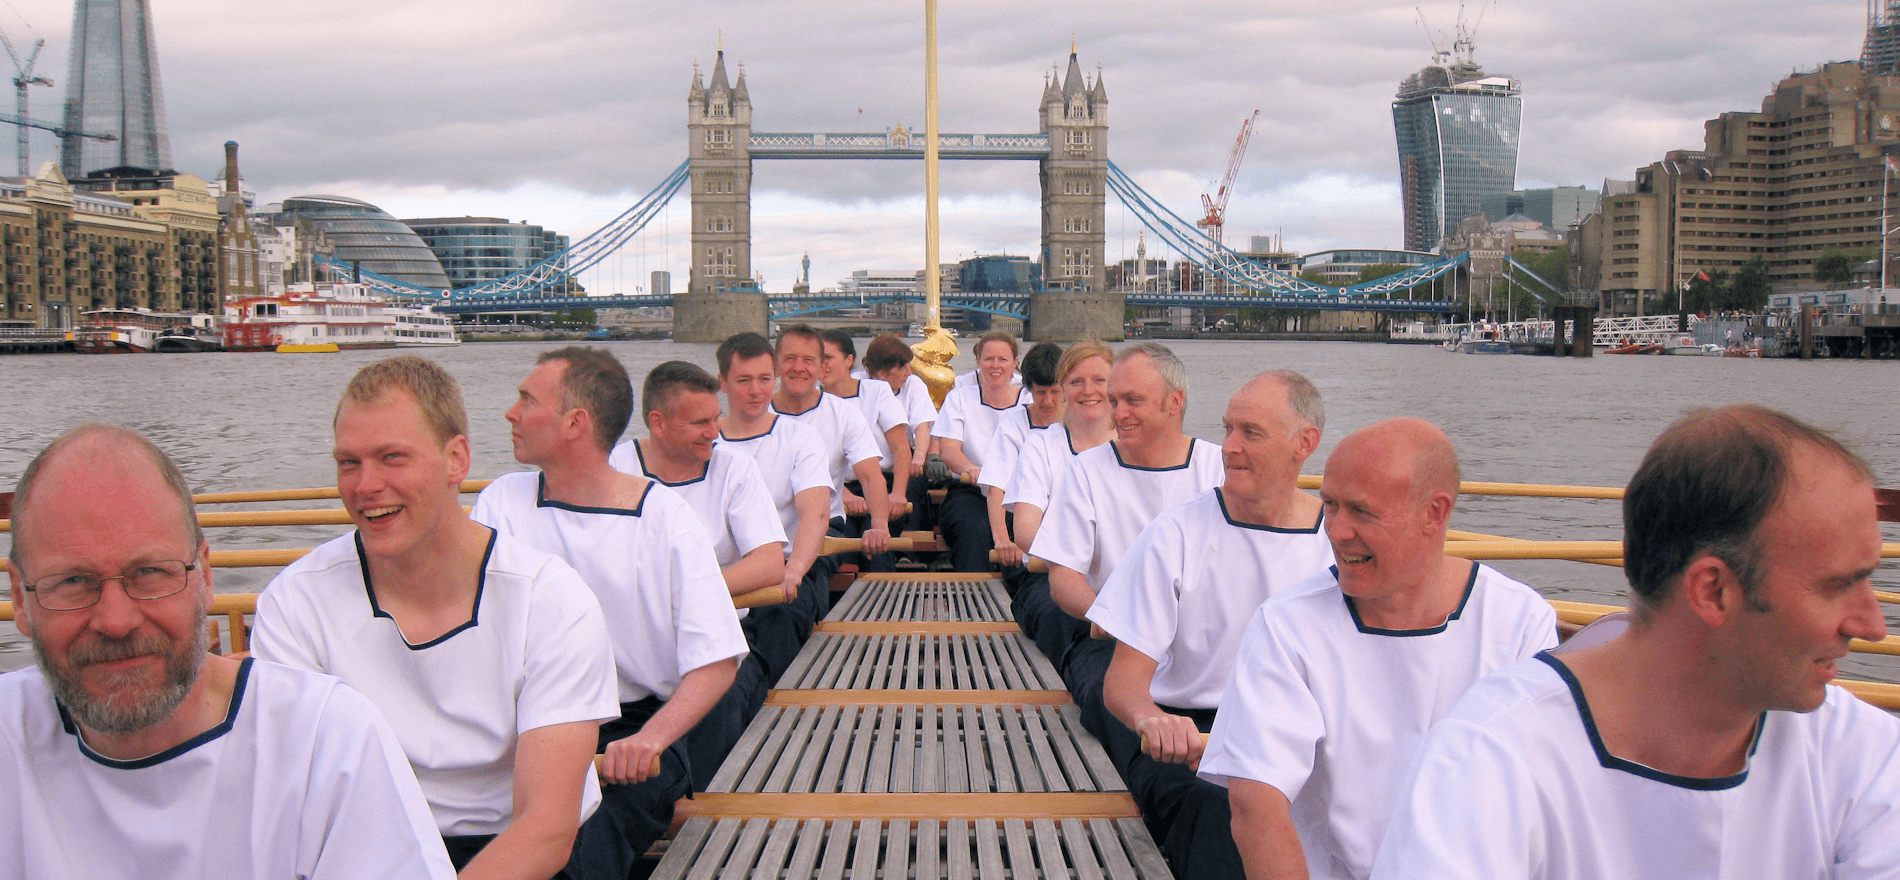 RNR HMS President Crew Tower Bridge rowing Gloriana